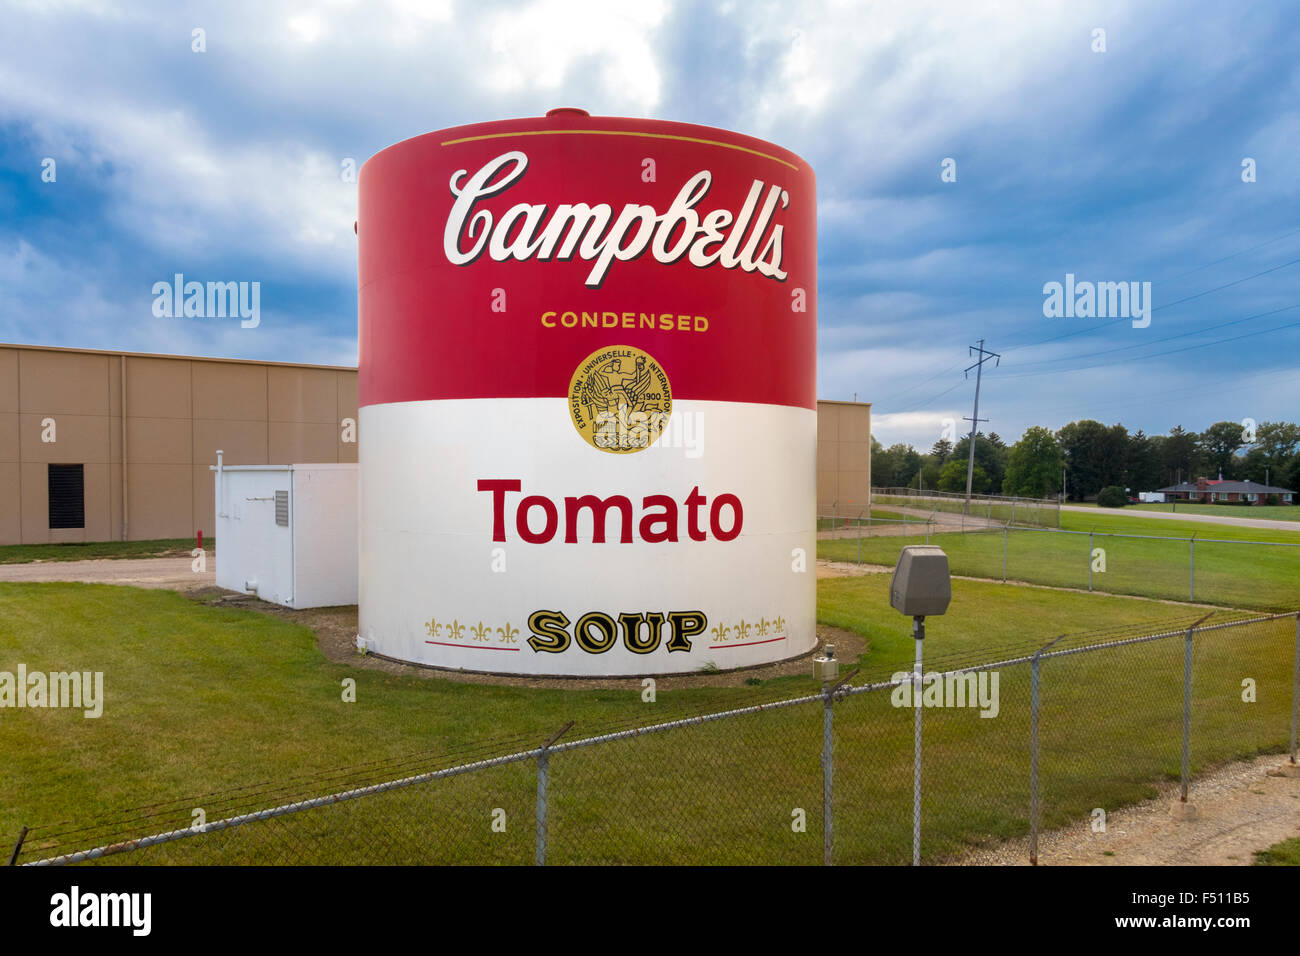 https://c7.alamy.com/comp/F511B5/giant-tomato-soup-can-outside-campbells-soup-supply-co-factory-in-F511B5.jpg